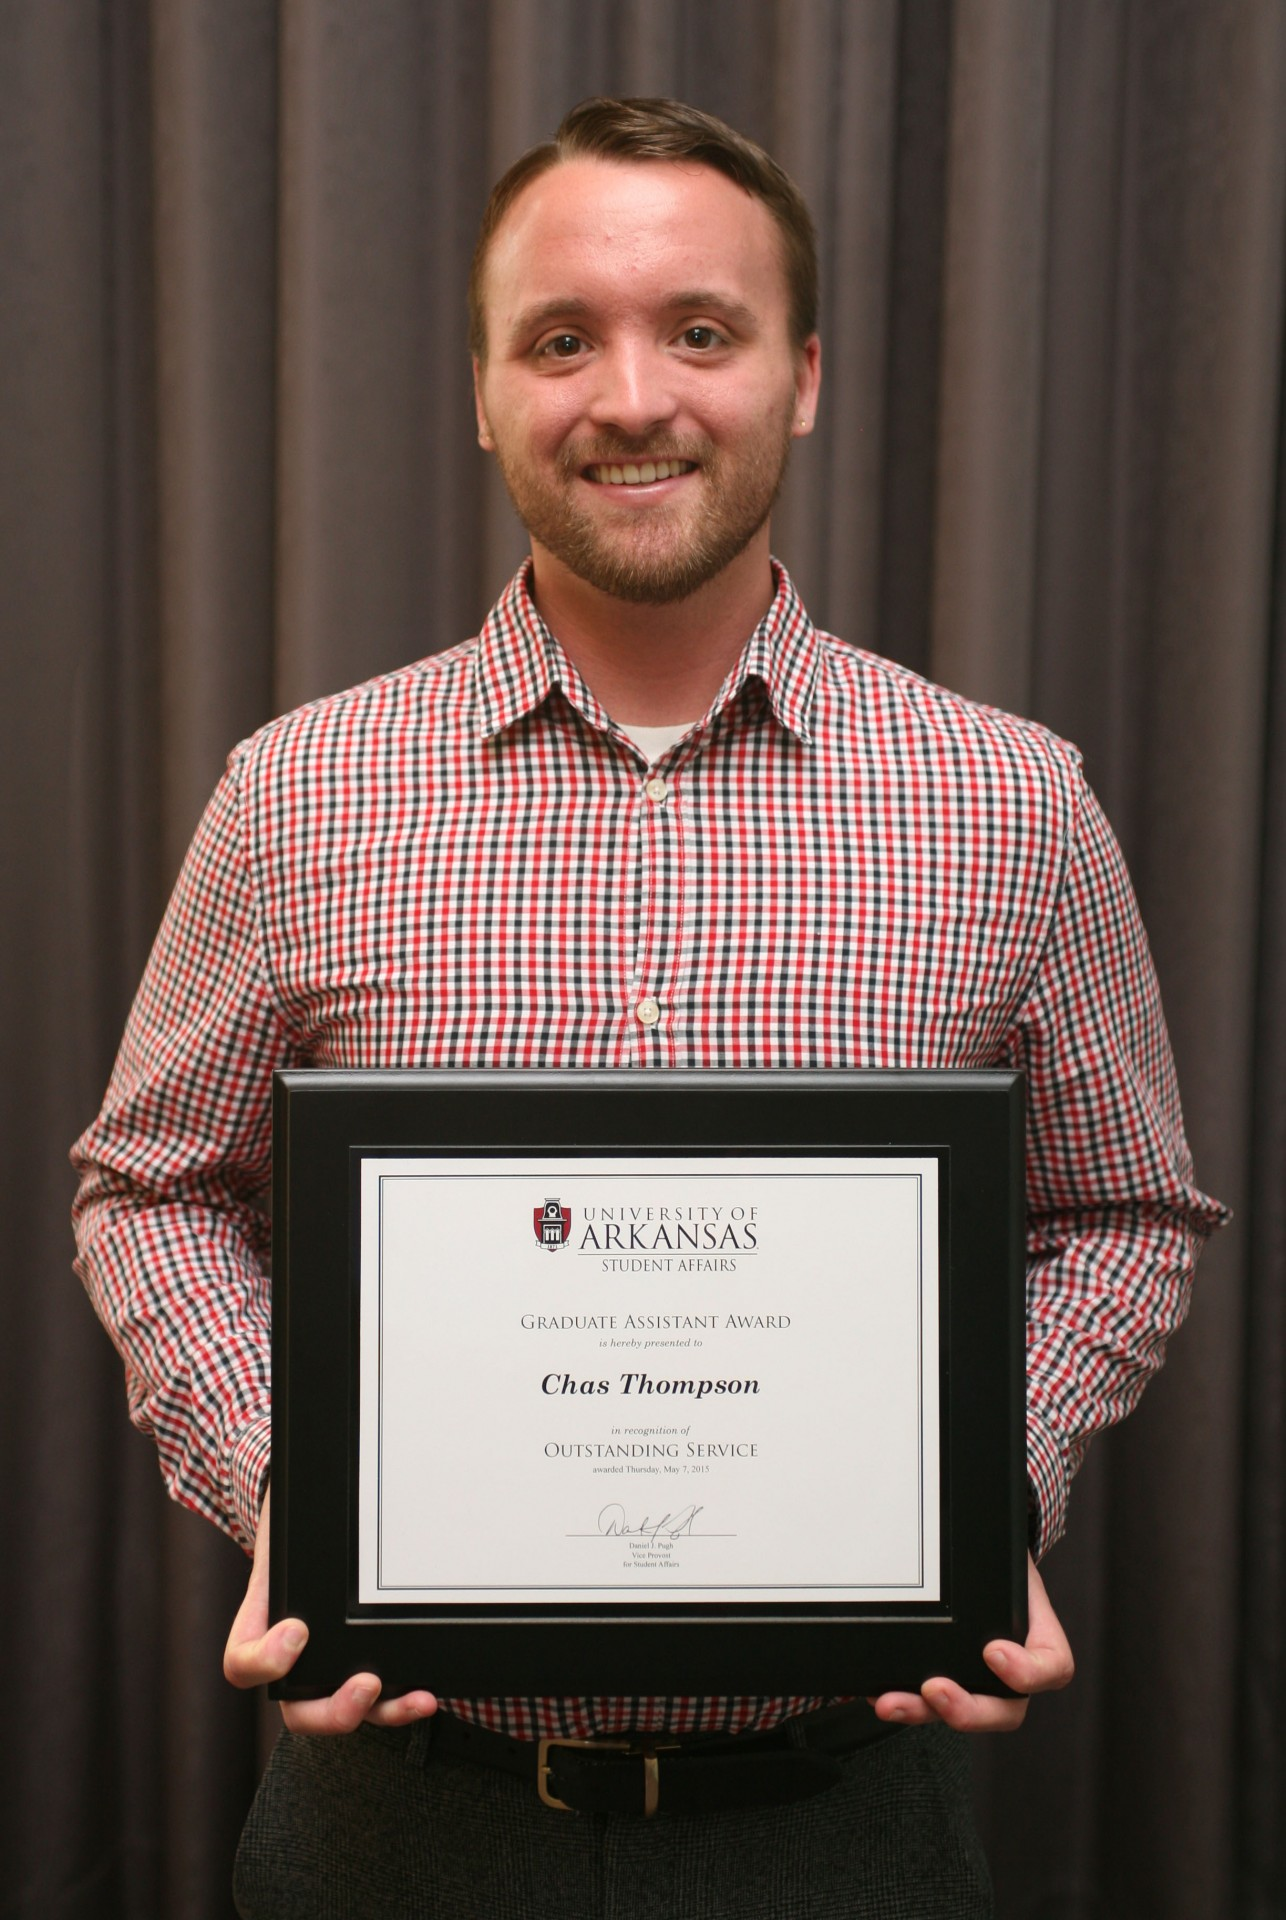 Chas Thompson received the Outstanding Graduate Assistant Award for 2014-2015.